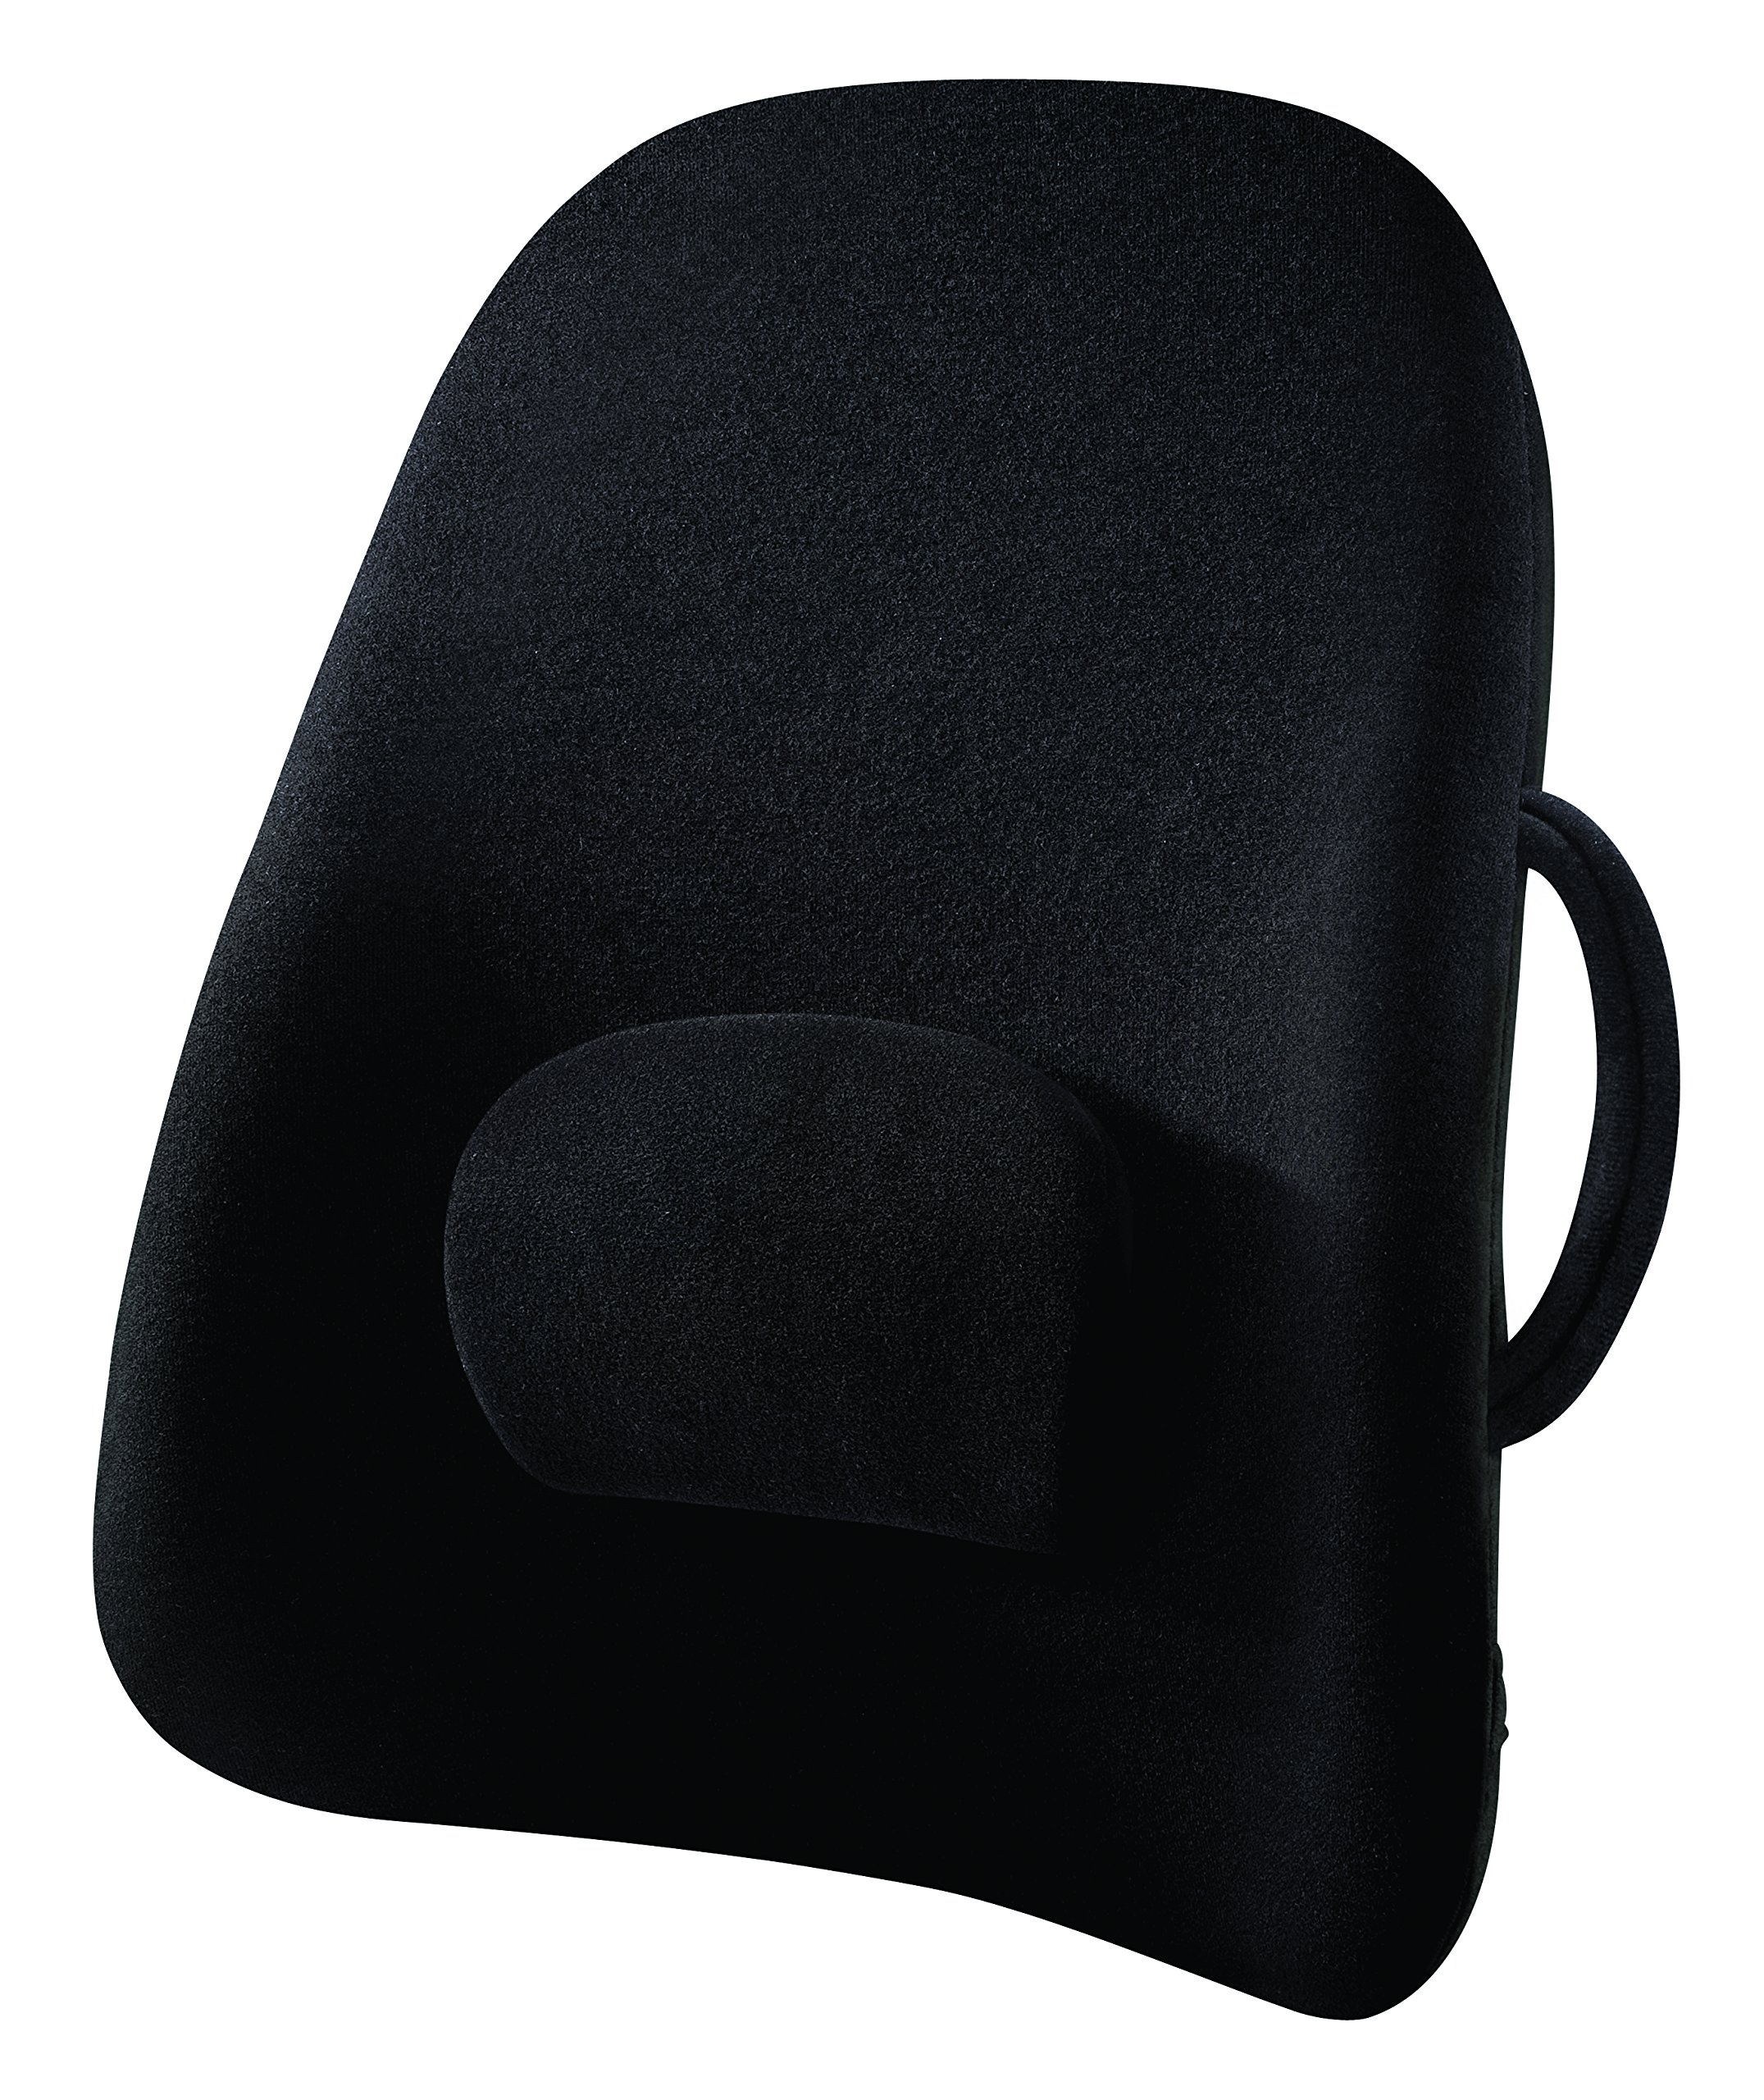 ObusForme Wideback Backrest Support Engineered For The Human Body, Removable & Adjustable Lumbar Support, Reduce Pressure On Your Back, Extra Wide For Broader Backs, S Shape Back Support by ObusForme (Image #1)